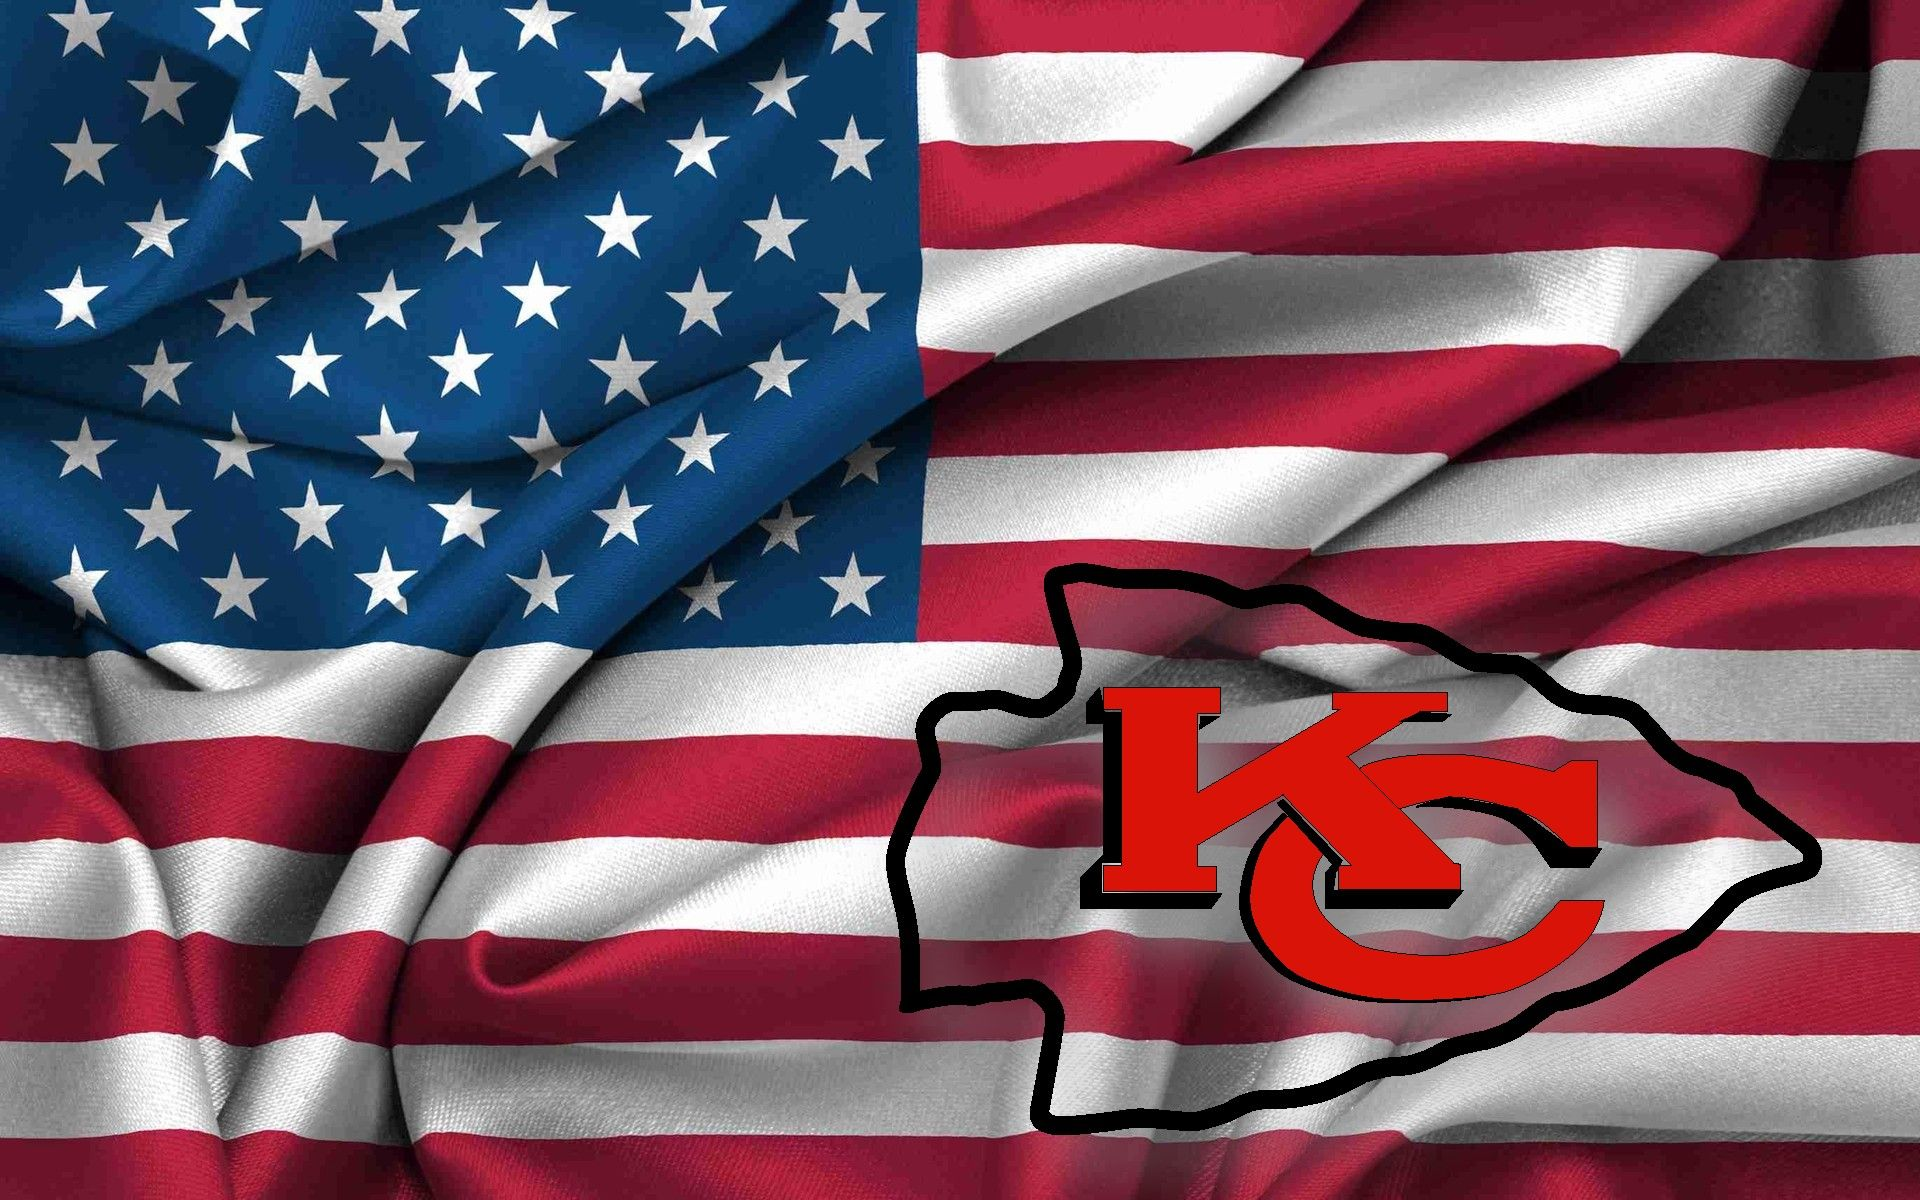 Kansas City Chiefs Hd Background Kansas City Chiefs Wallpapers Kansas City Chiefs Chiefs Wallpaper Chiefs Logo